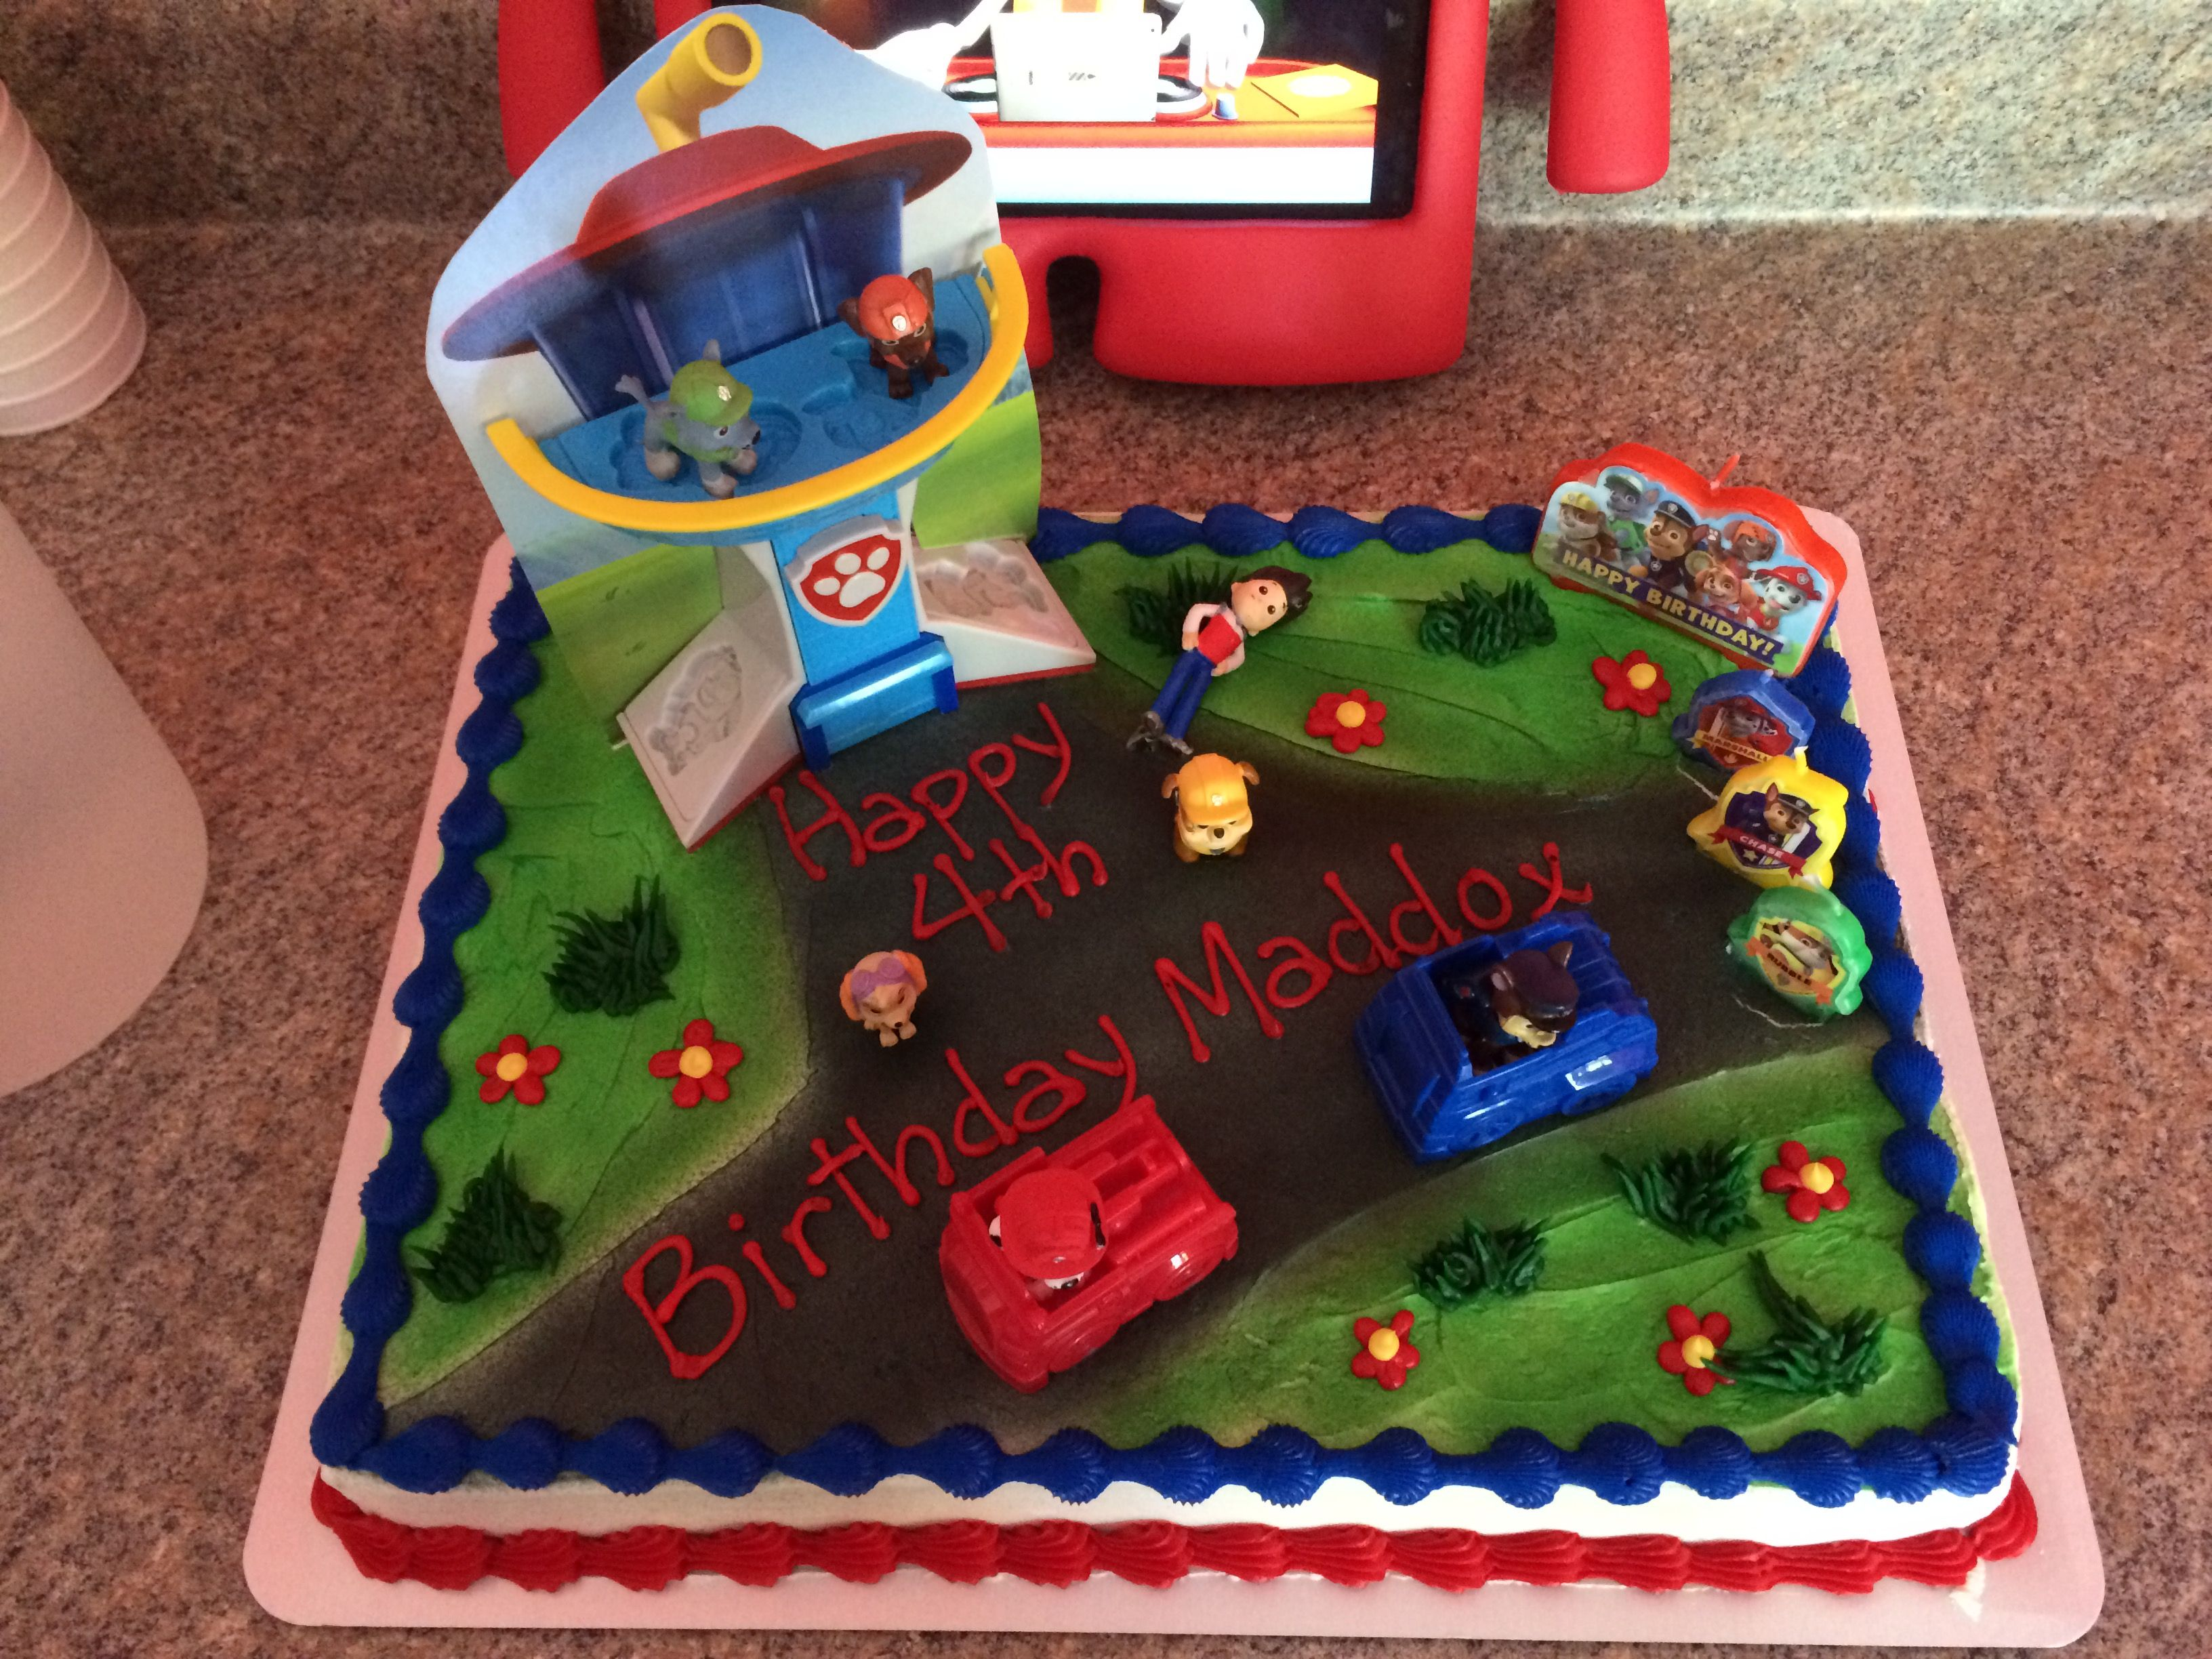 This Was A Mickey Mouse Club House Standard Cake From Target Added Paw Patrol Play Doh Cars And Lookout Tower Figures Candles Party